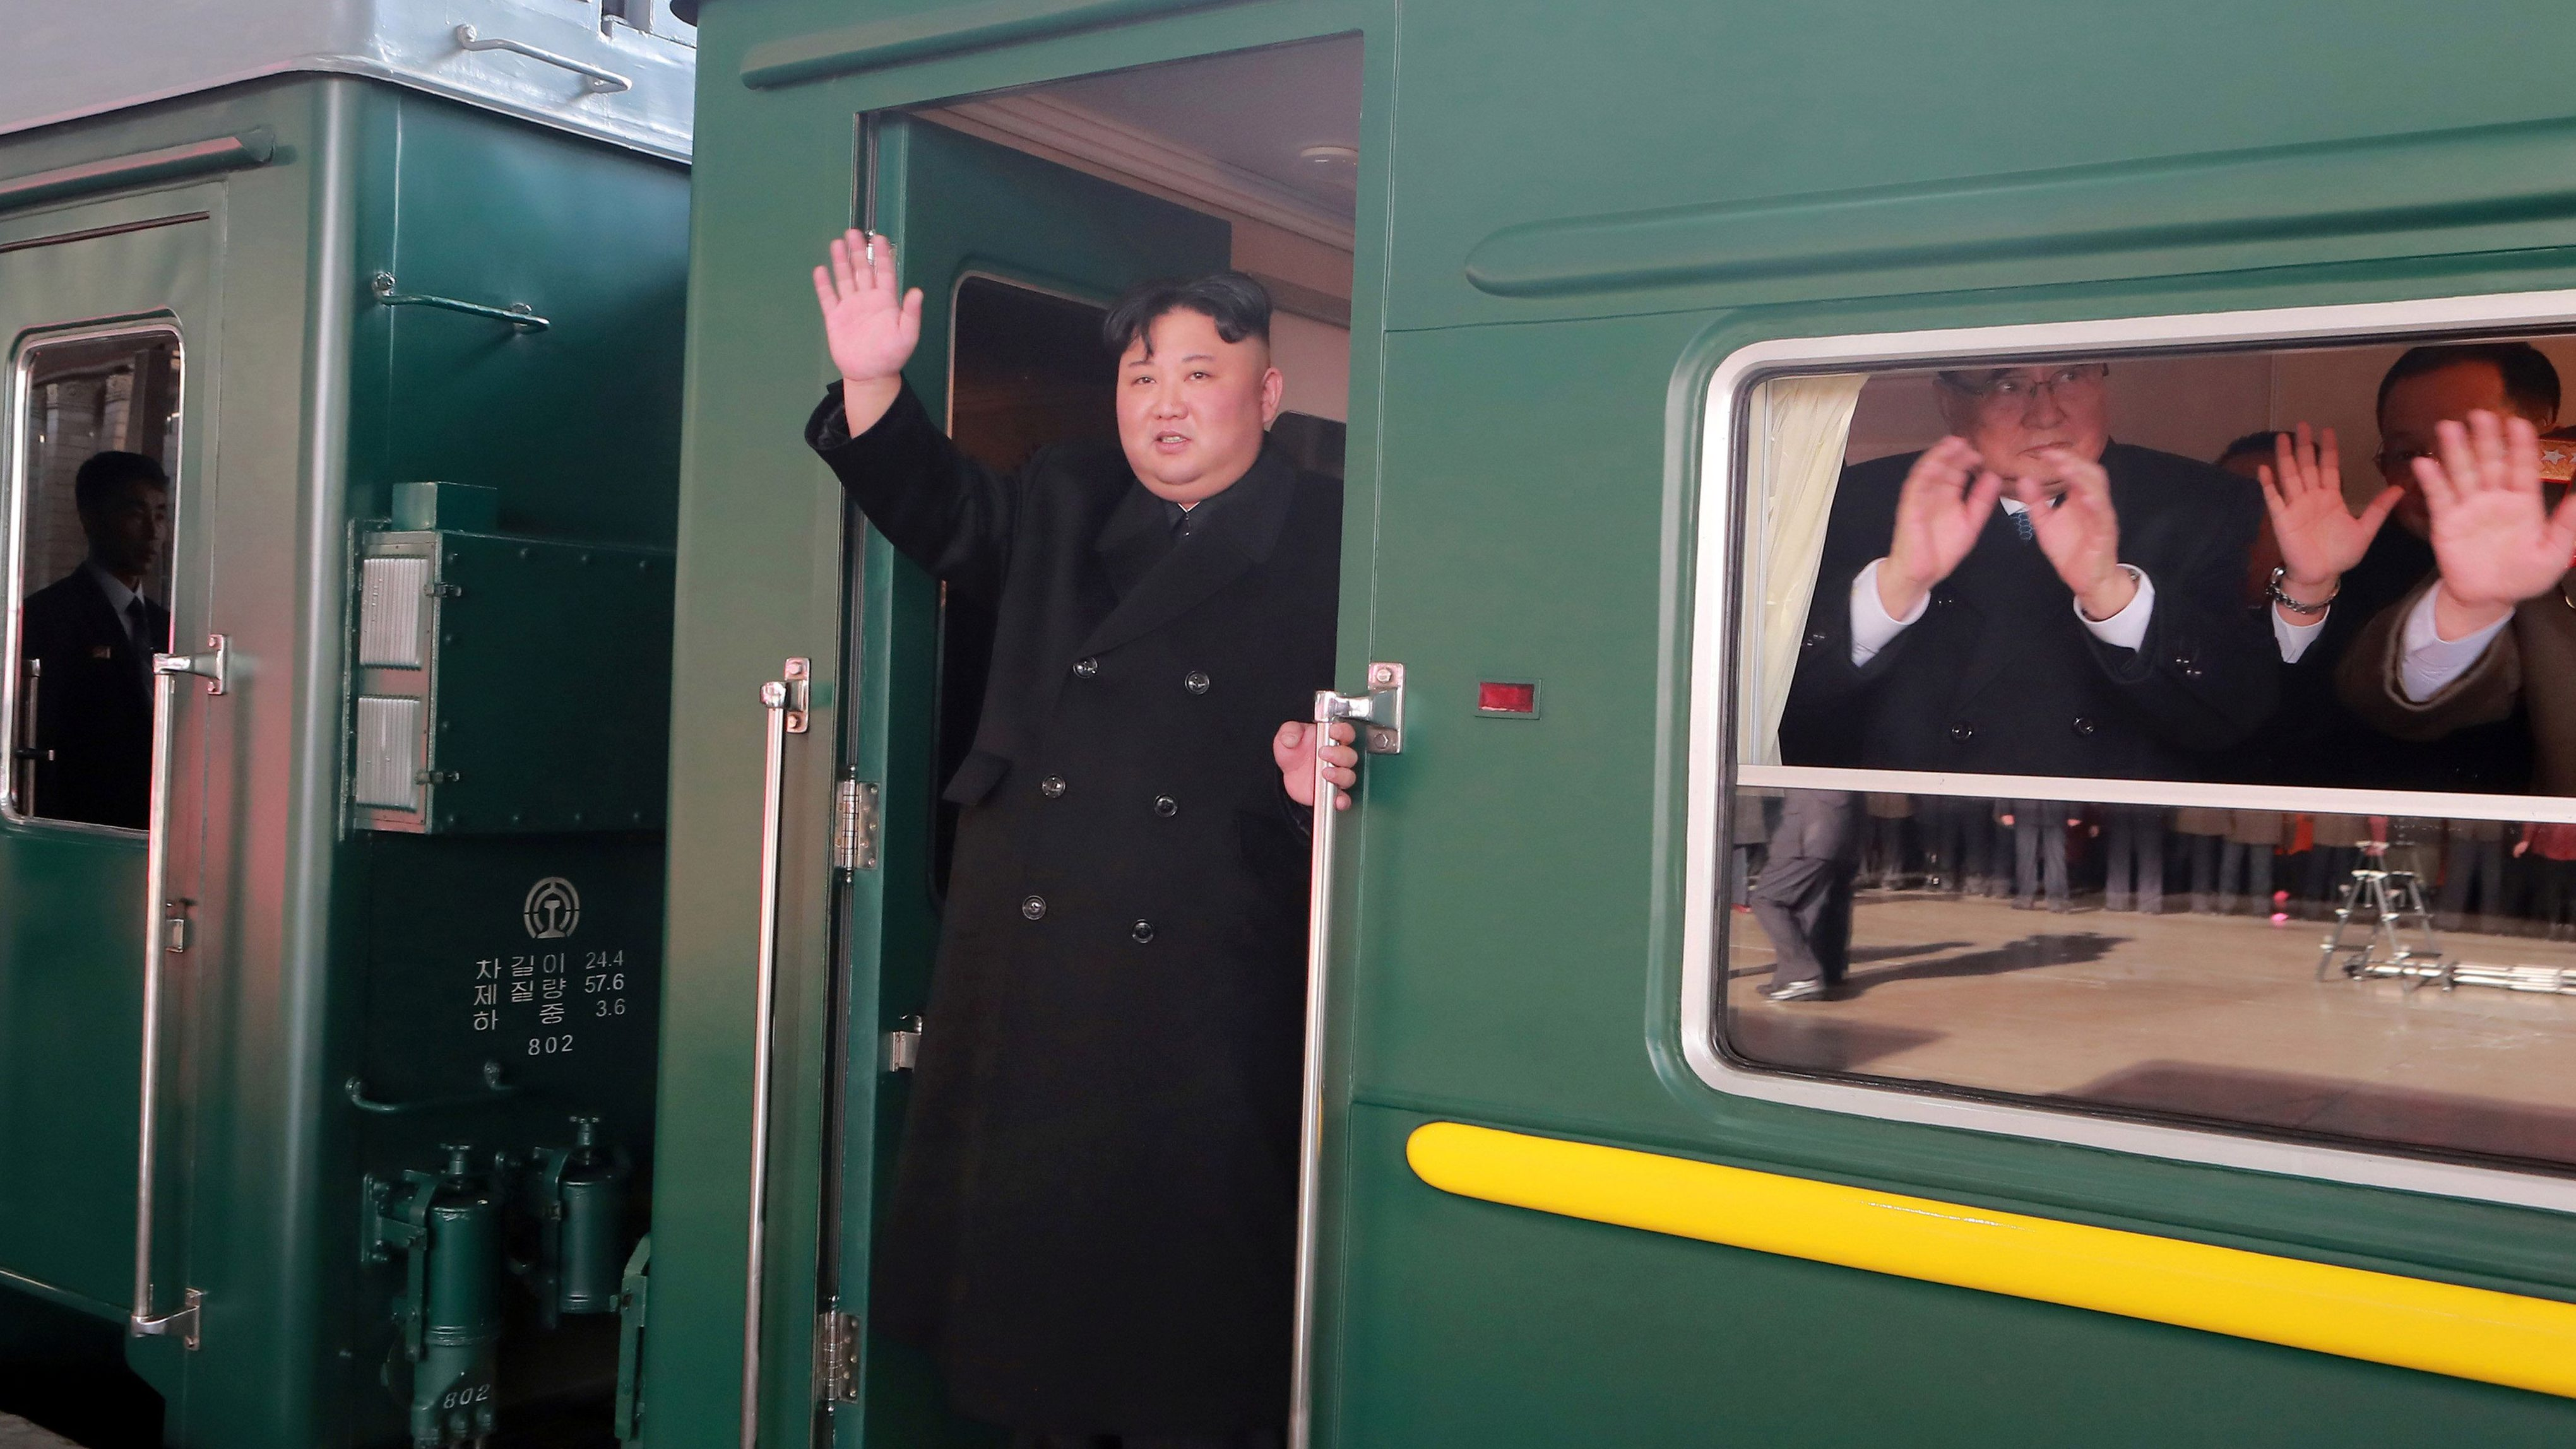 North Korean leader Kim Jong Un waves from a train as he departs for a summit in Hanoi, in Pyongyang, North Korea in this photo released by North Korea's Korean Central News Agency (KCNA) on February 23, 2019. KCNA via REUTERS ATTENTION EDITORS - THIS IMAGE WAS PROVIDED BY A THIRD PARTY. REUTERS IS UNABLE TO INDEPENDENTLY VERIFY THIS IMAGE. NO THIRD PARTY SALES. SOUTH KOREA OUT. NO COMMERCIAL OR EDITORIAL SALES IN SOUTH KOREA. - RC1FA975E880